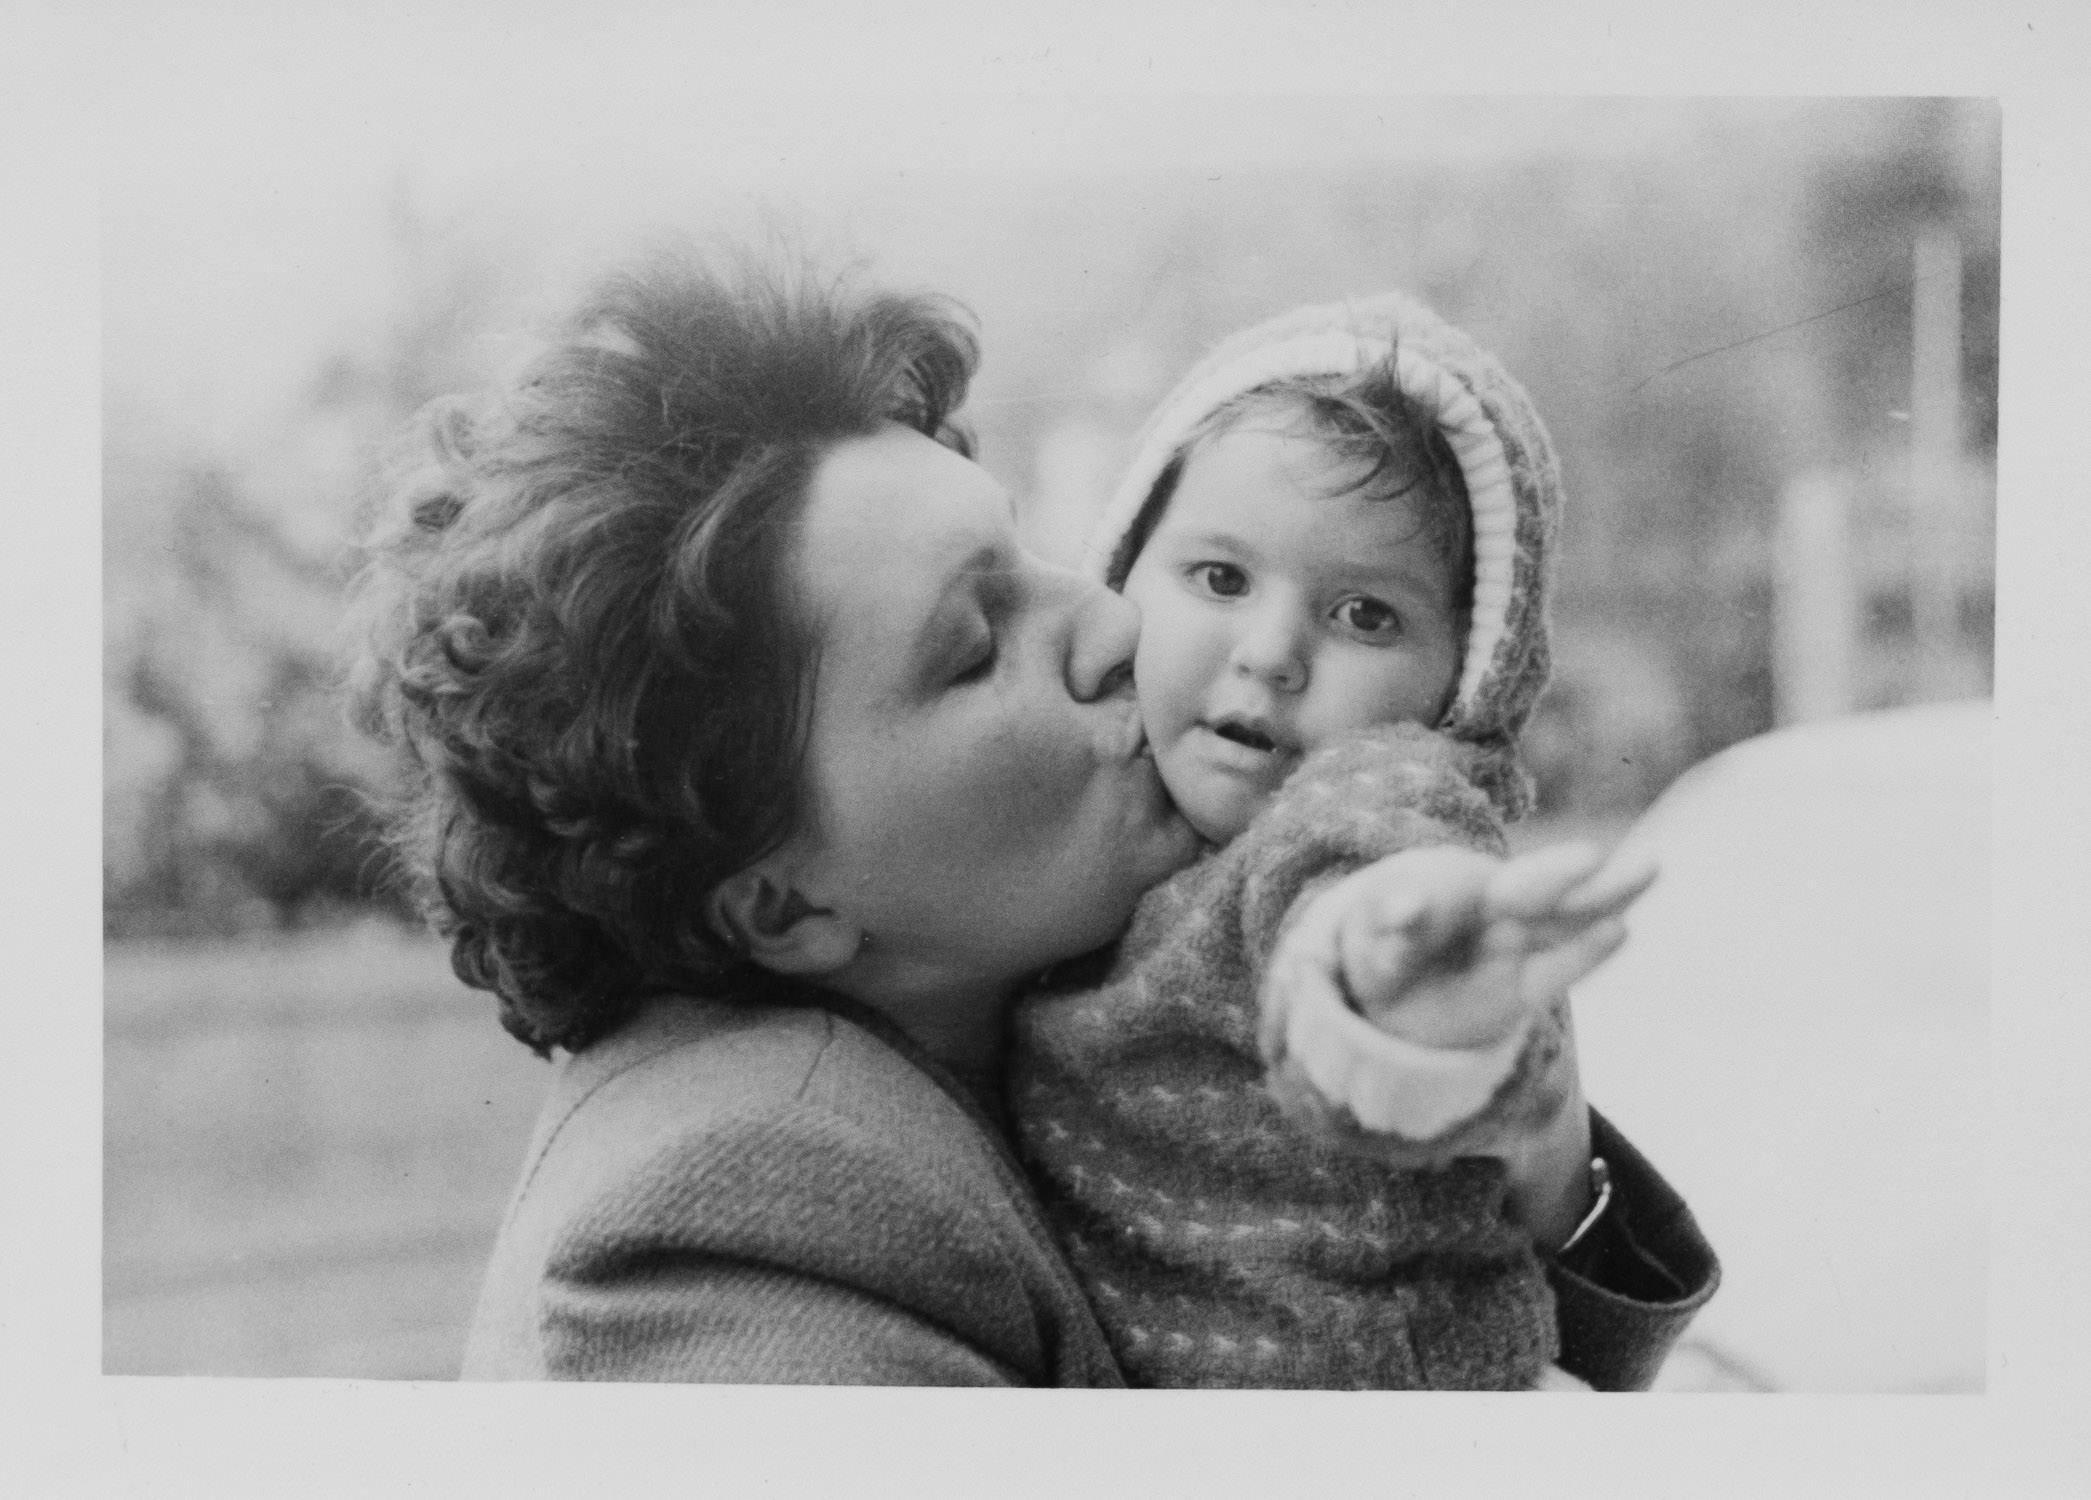 Mother and daughter, black and white 80's photography.